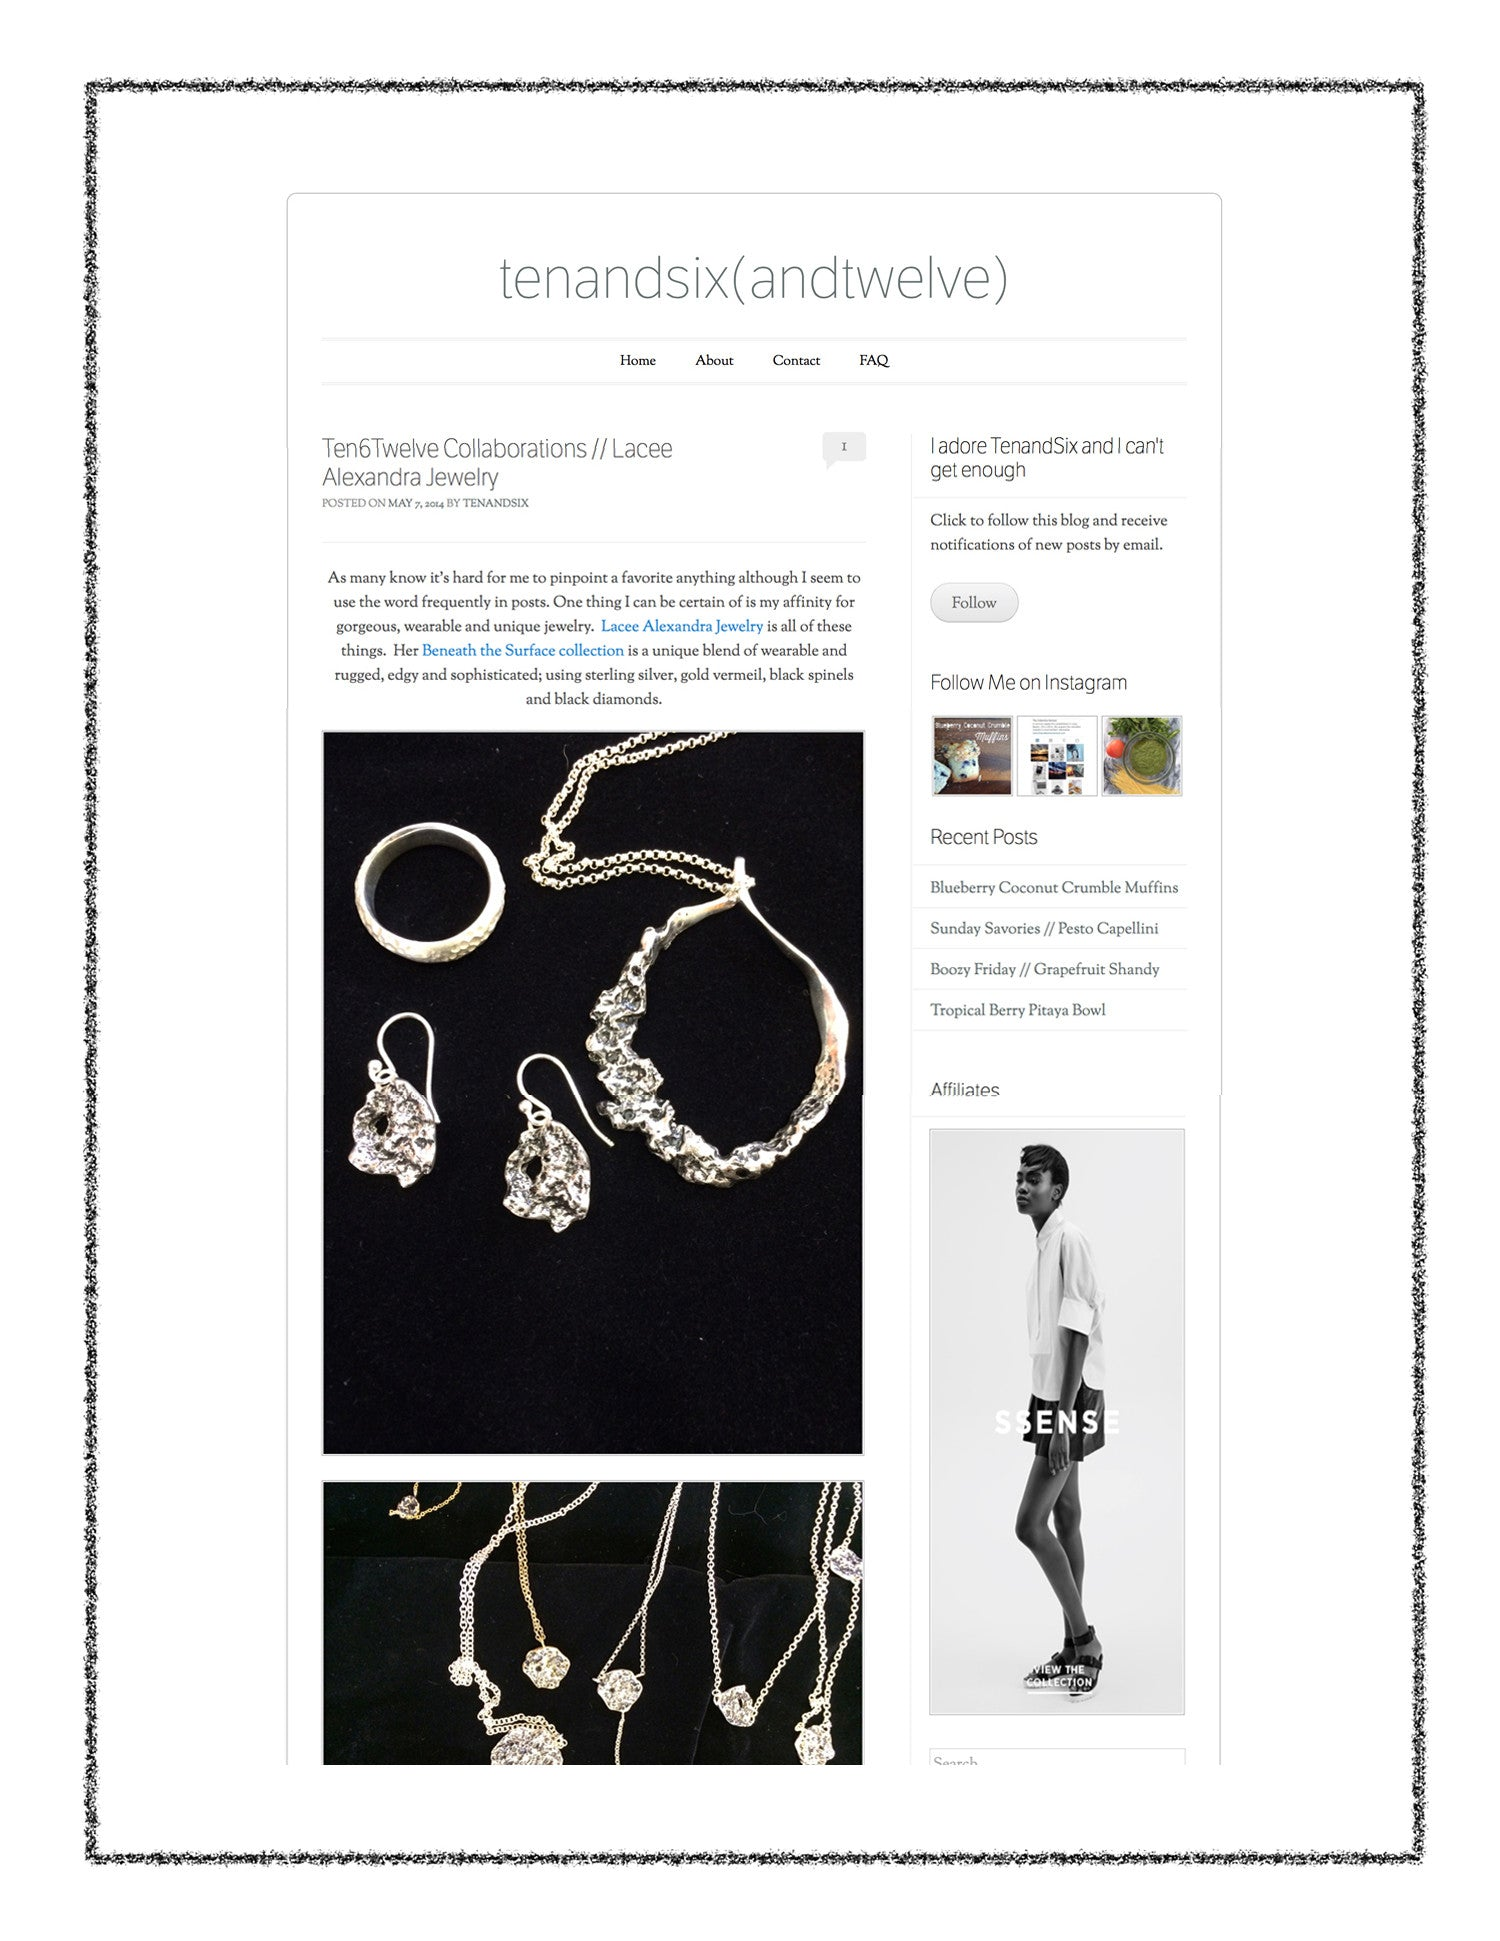 Lacee Alexandra Jewelry Press